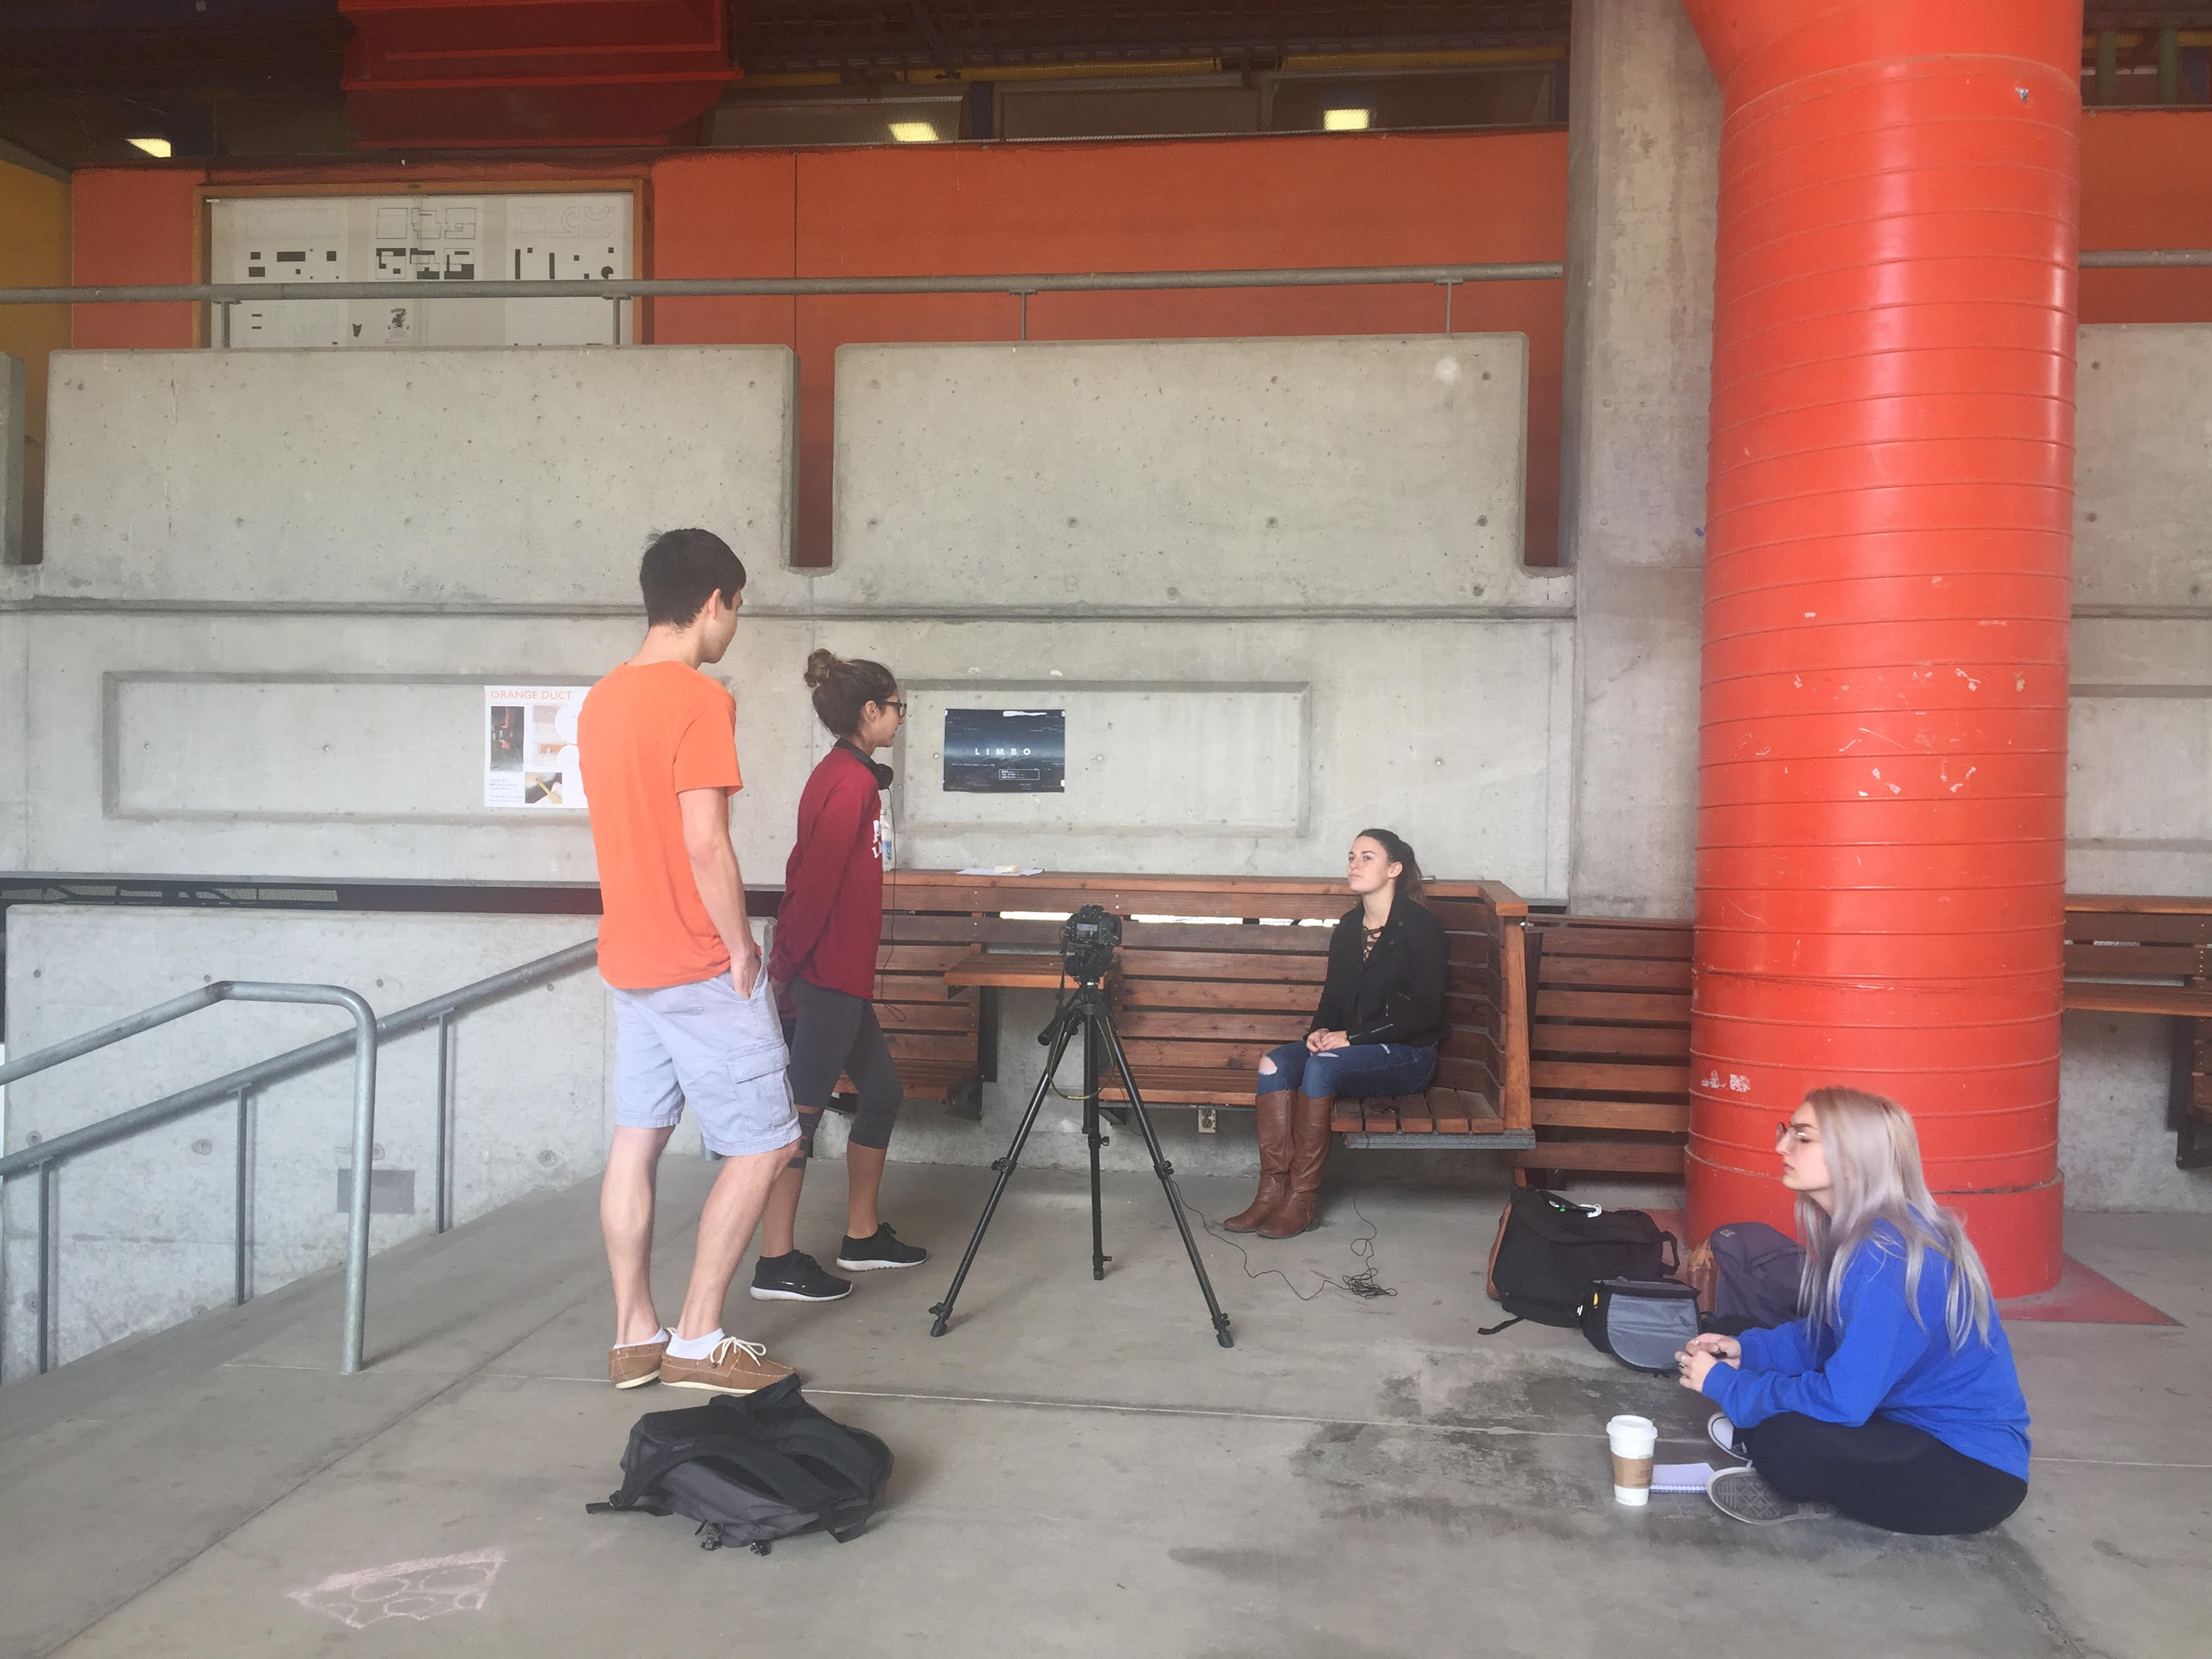 The group interviewing former Cal Poly Subway employee, Liberal Studies sophomore Marina Salluce